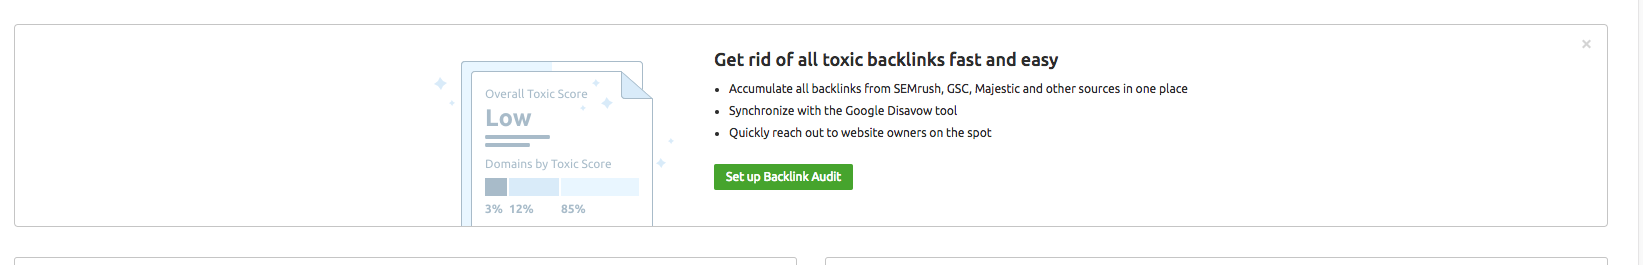 Backlinks Overview Report image 7